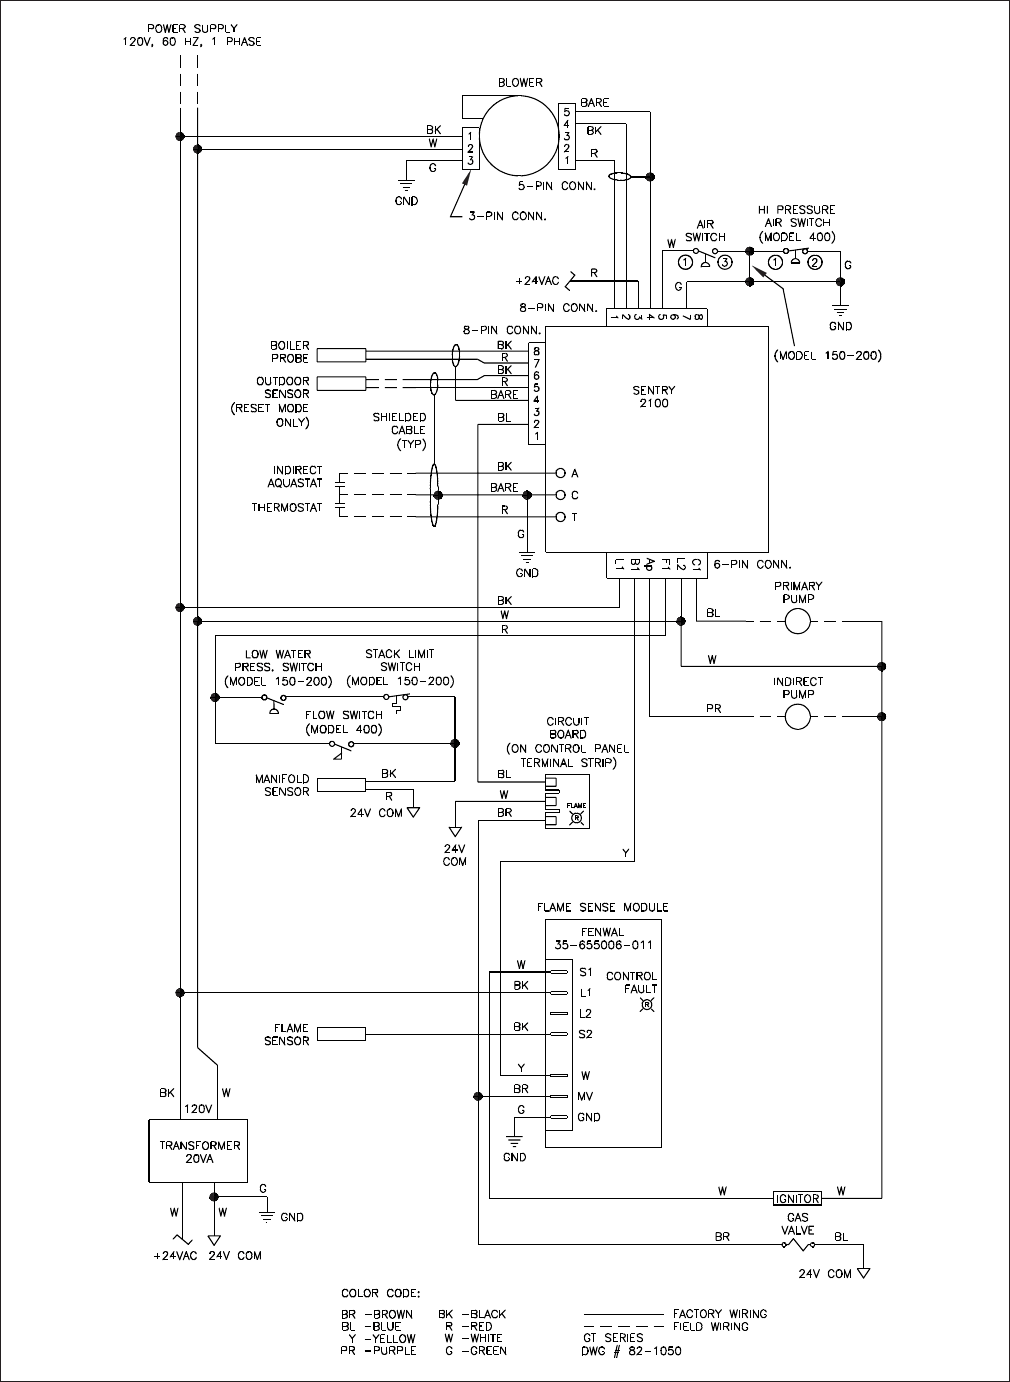 Gt installation and operation instructionspage 24